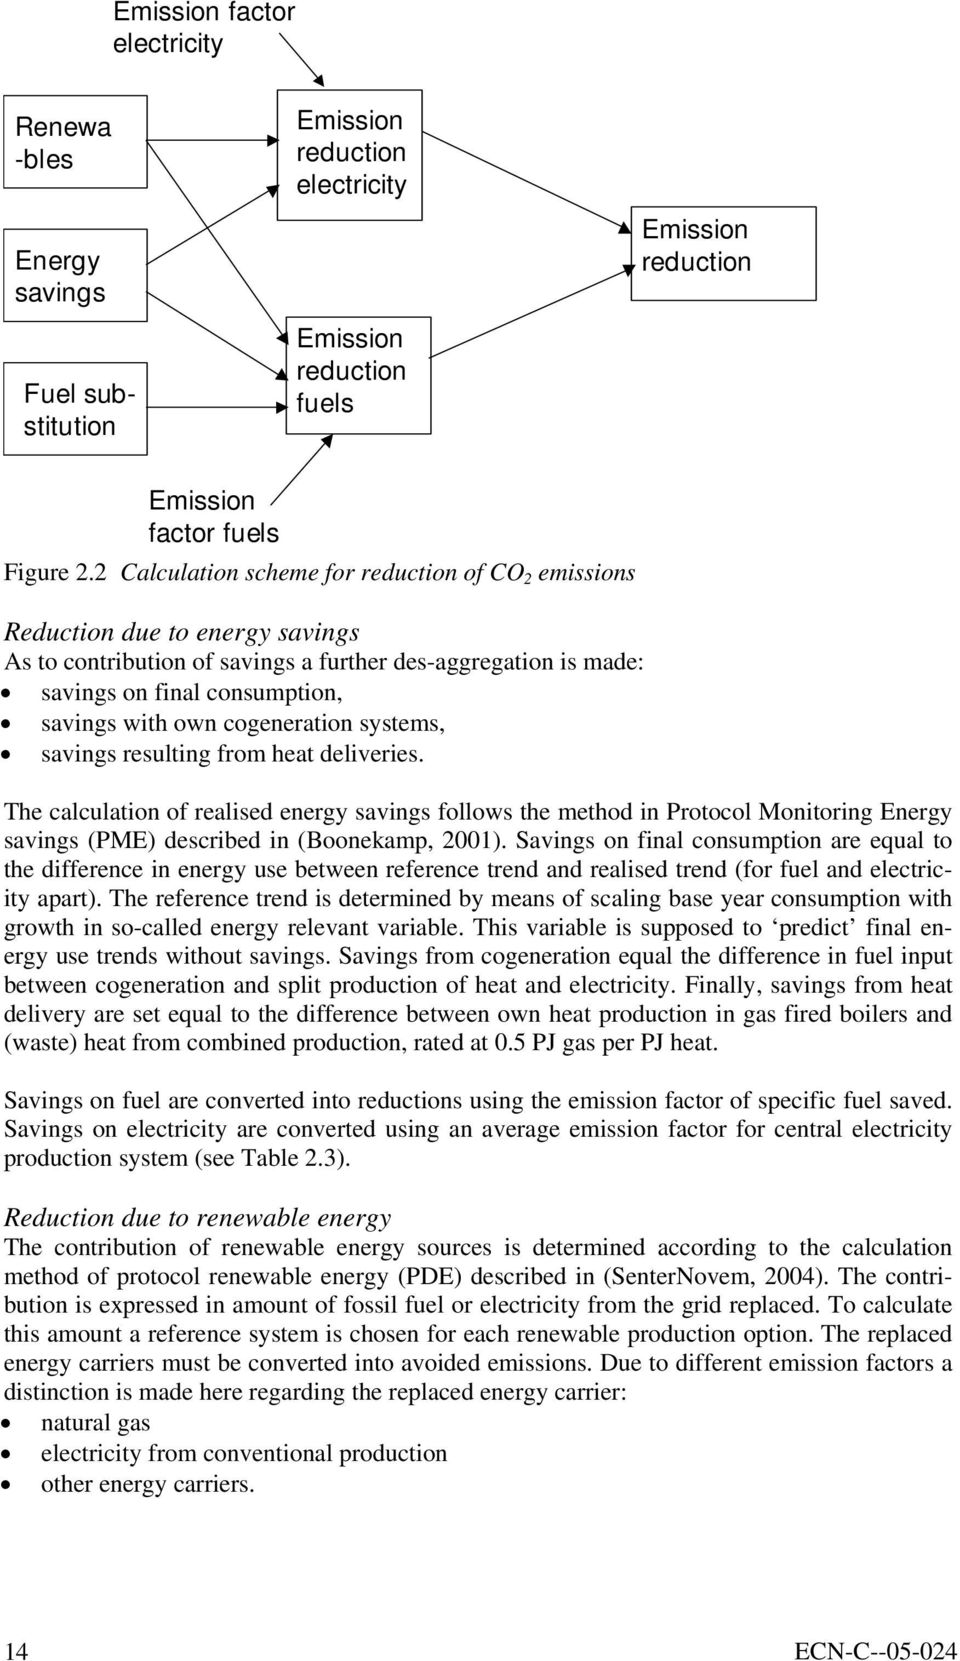 cogeneration systems, savings resulting from heat deliveries. The calculation of realised energy savings follows the method in Protocol Monitoring Energy savings (PME) described in (Boonekamp, 2001).